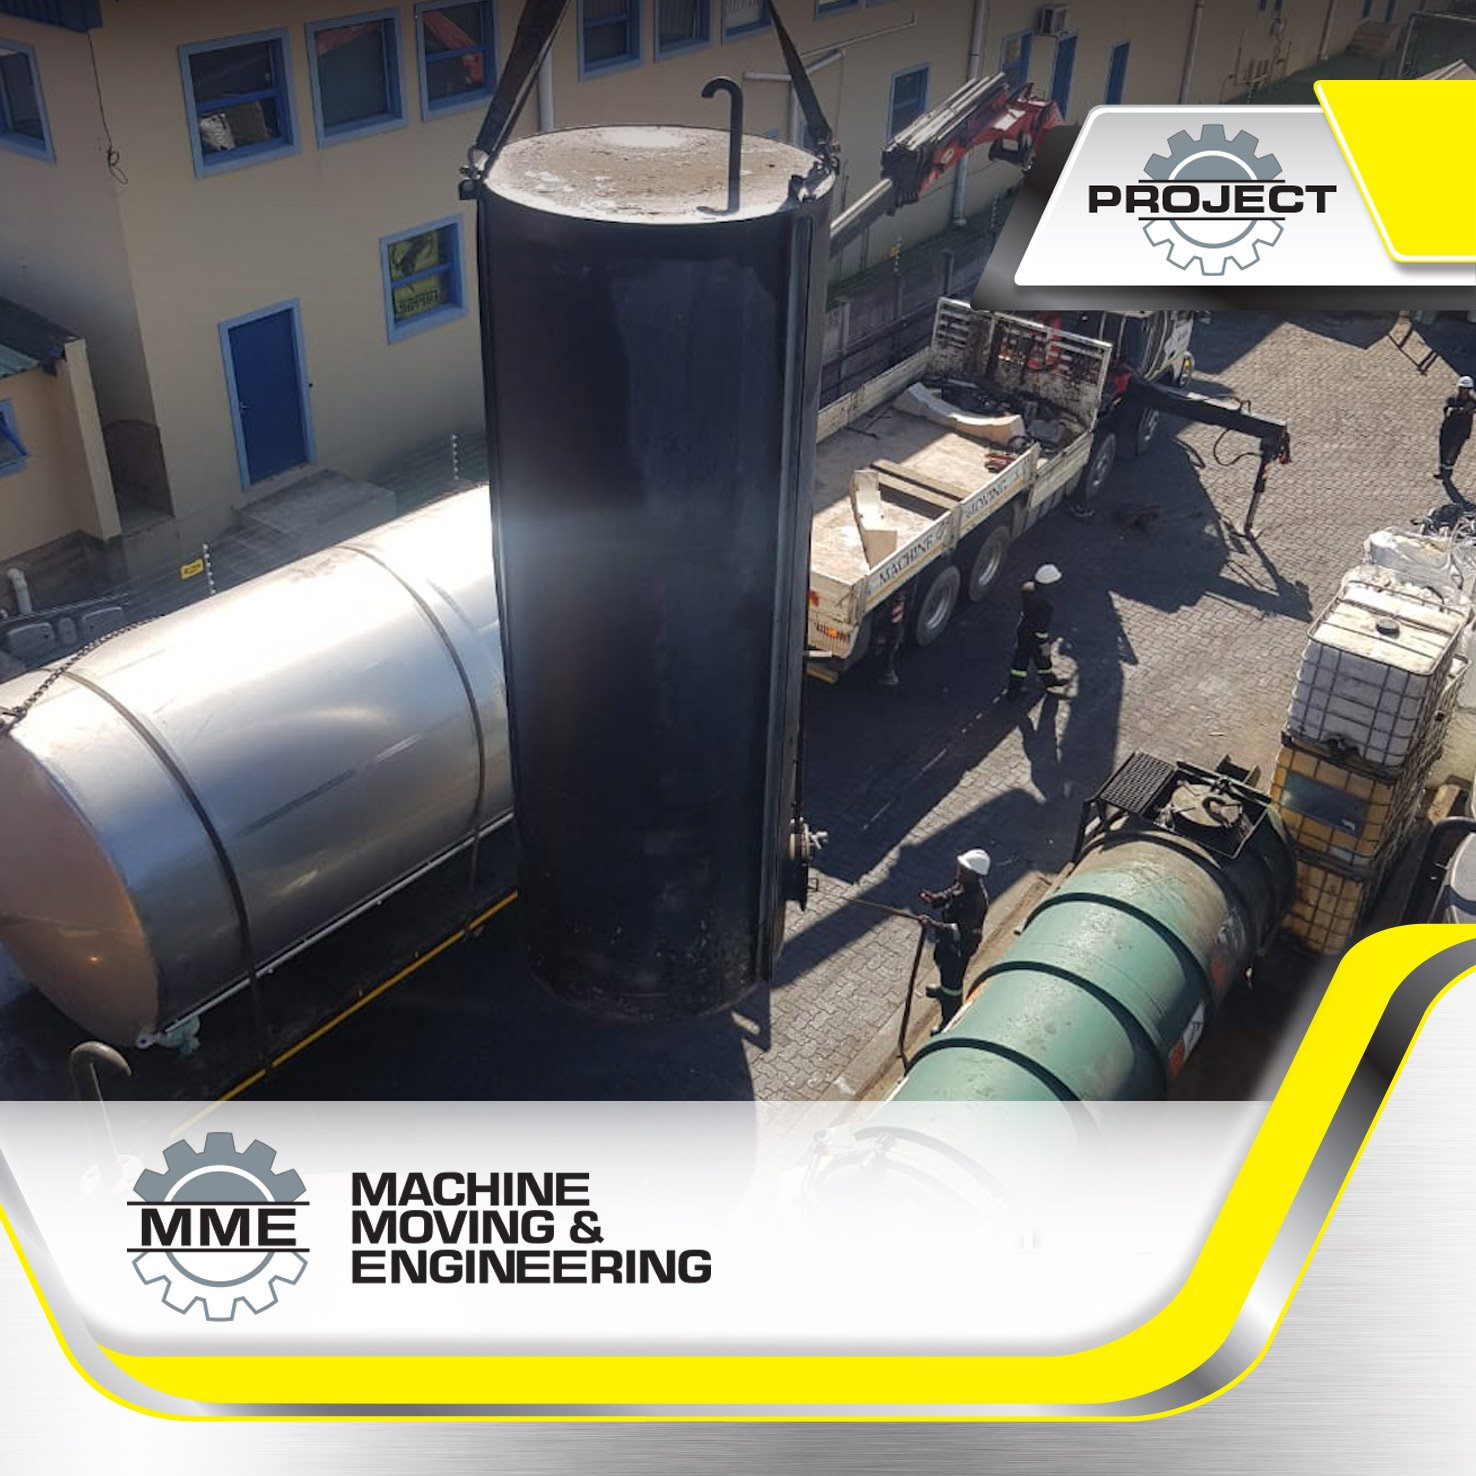 tank relocation in durban mme-projects-mme-machine-moving-engineering-machinery-equipment-gauteng-kwazulu-natal-south-africa-pinpoint-precision